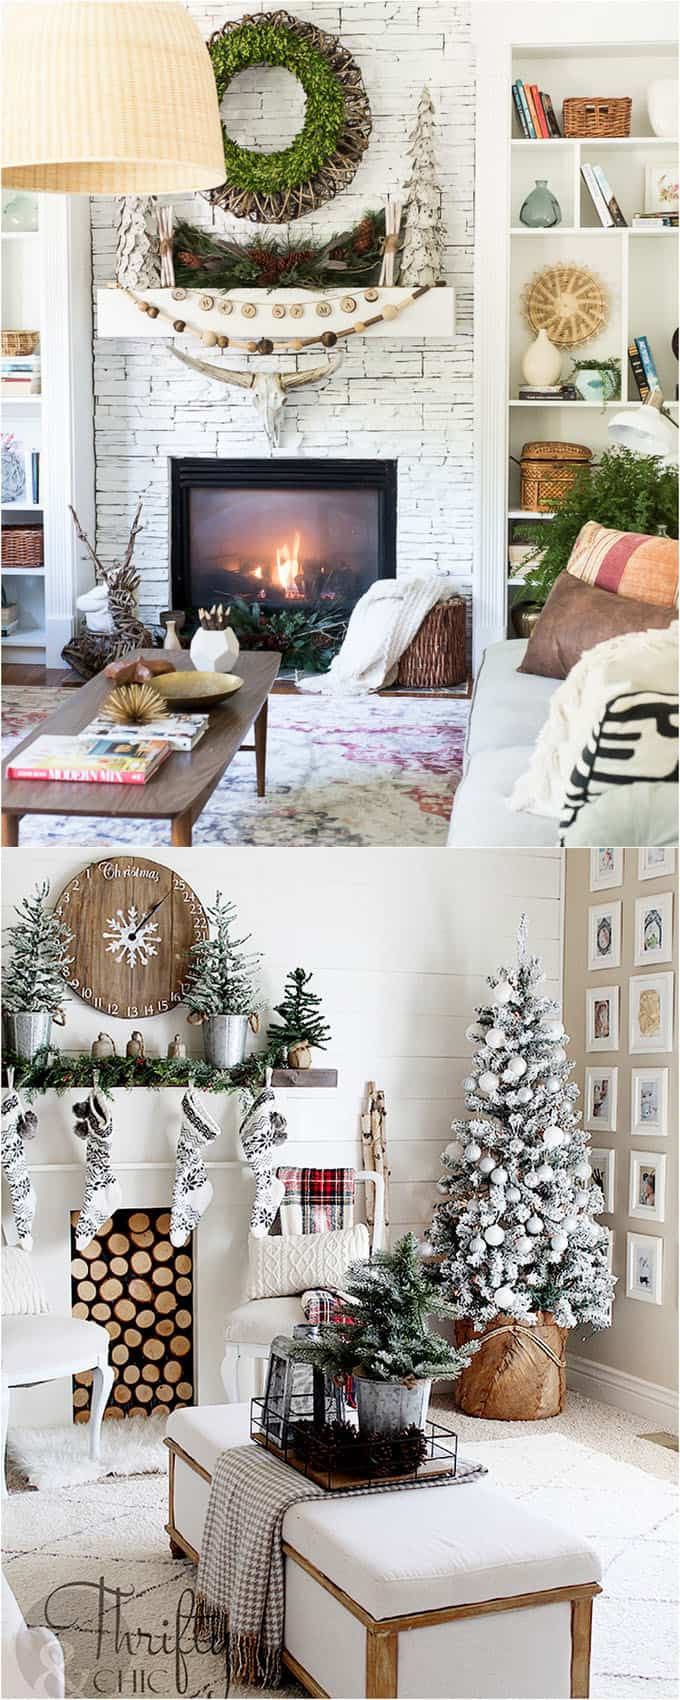 Symmetry And Repetitions Are Used Beautifully In The Above Examples Such As  The Pair Of Small Christmas Trees On The Mantle, The Multiple Garlands, ...